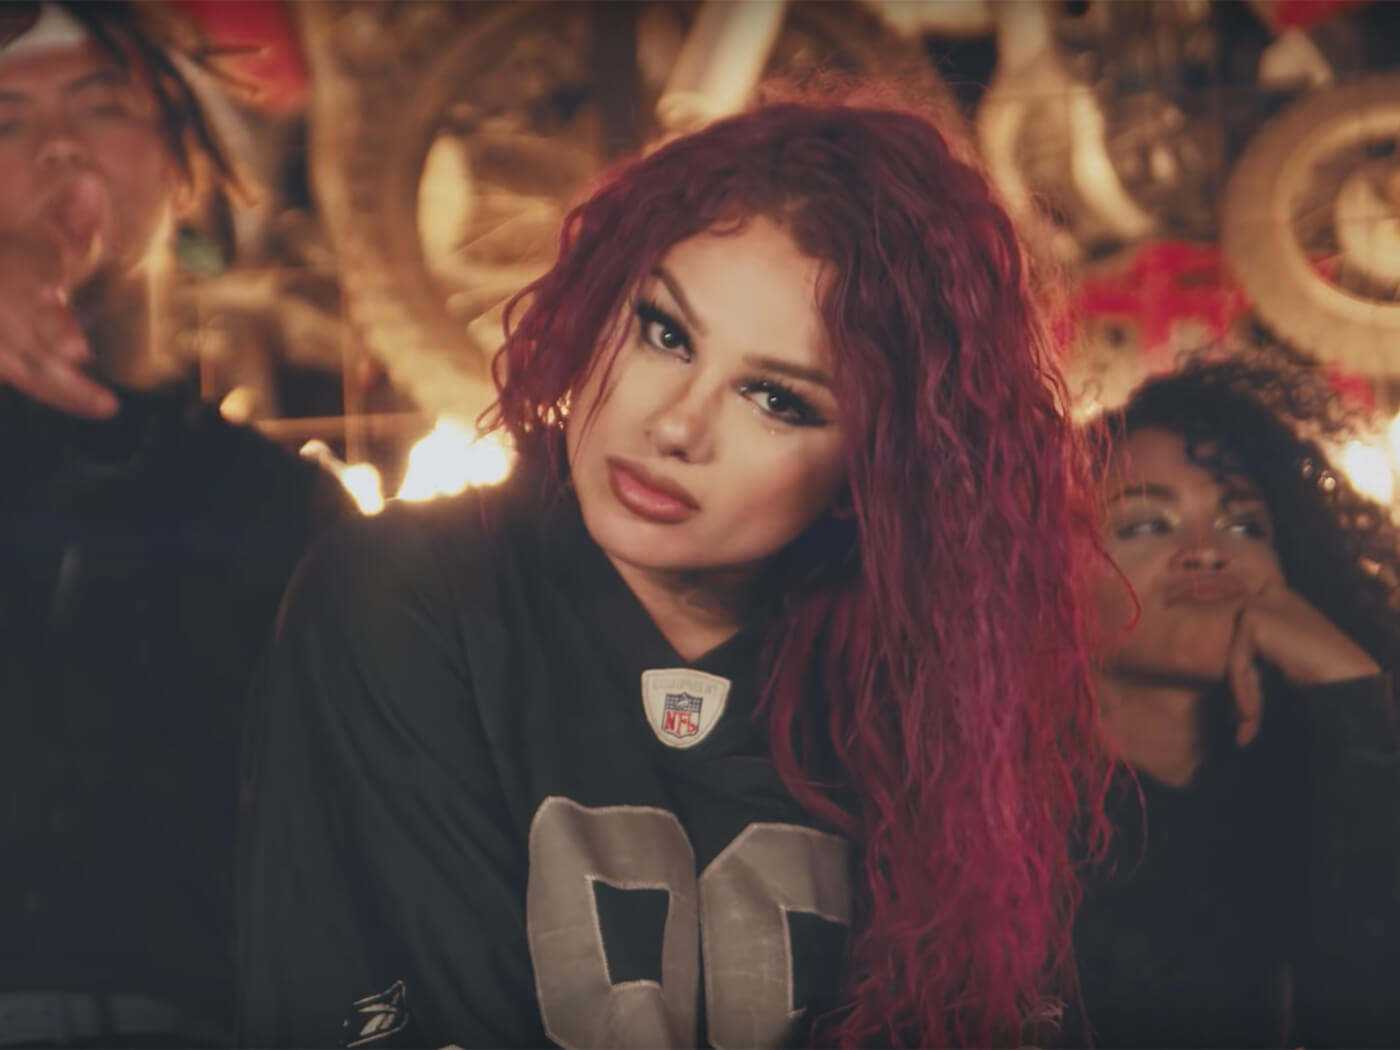 Snow tha Product lives for Petty drama in new video labfm 1400x1050